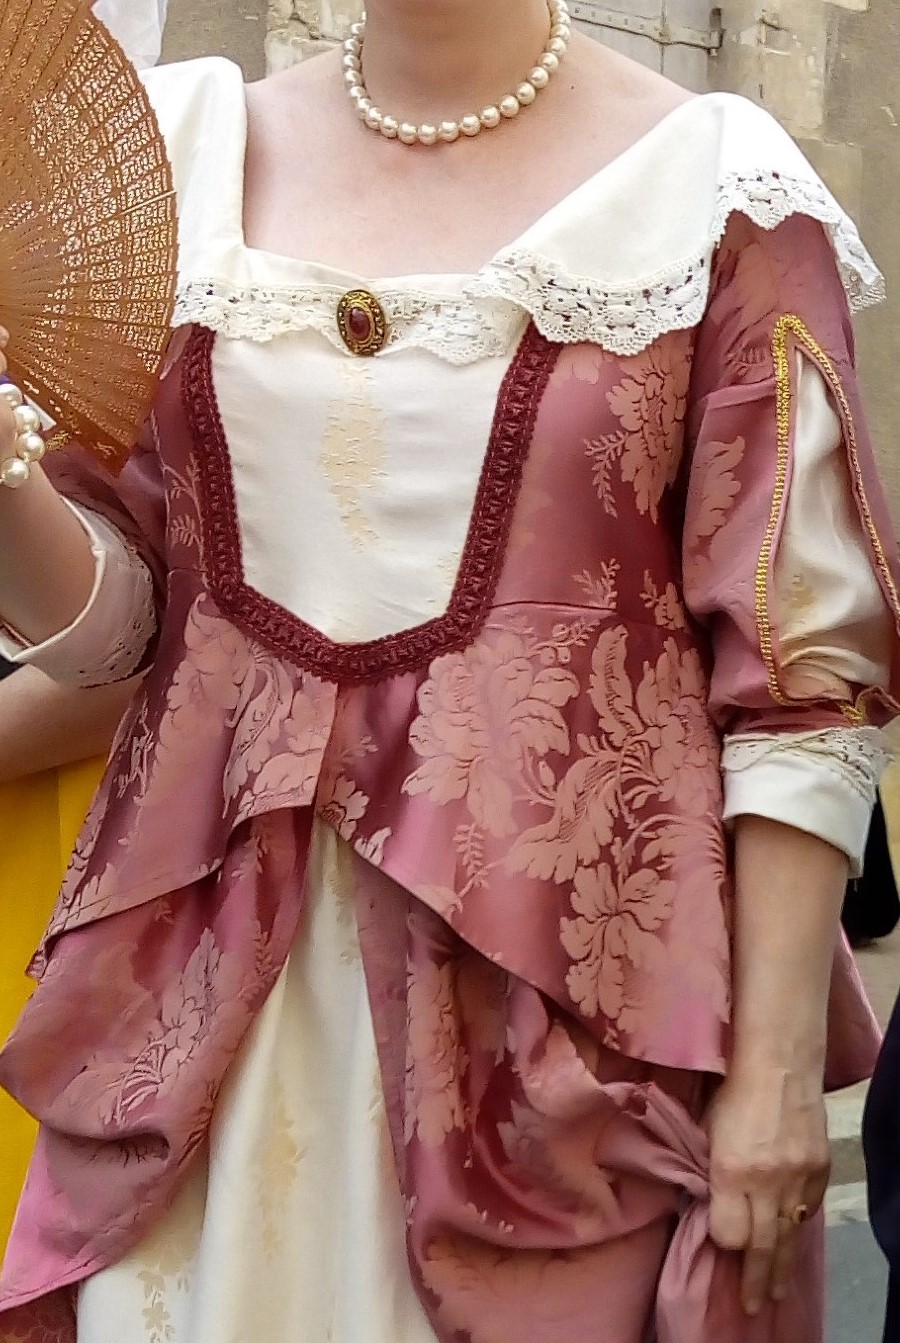 Detail of the Louise Marguerite of Lorraine's costume